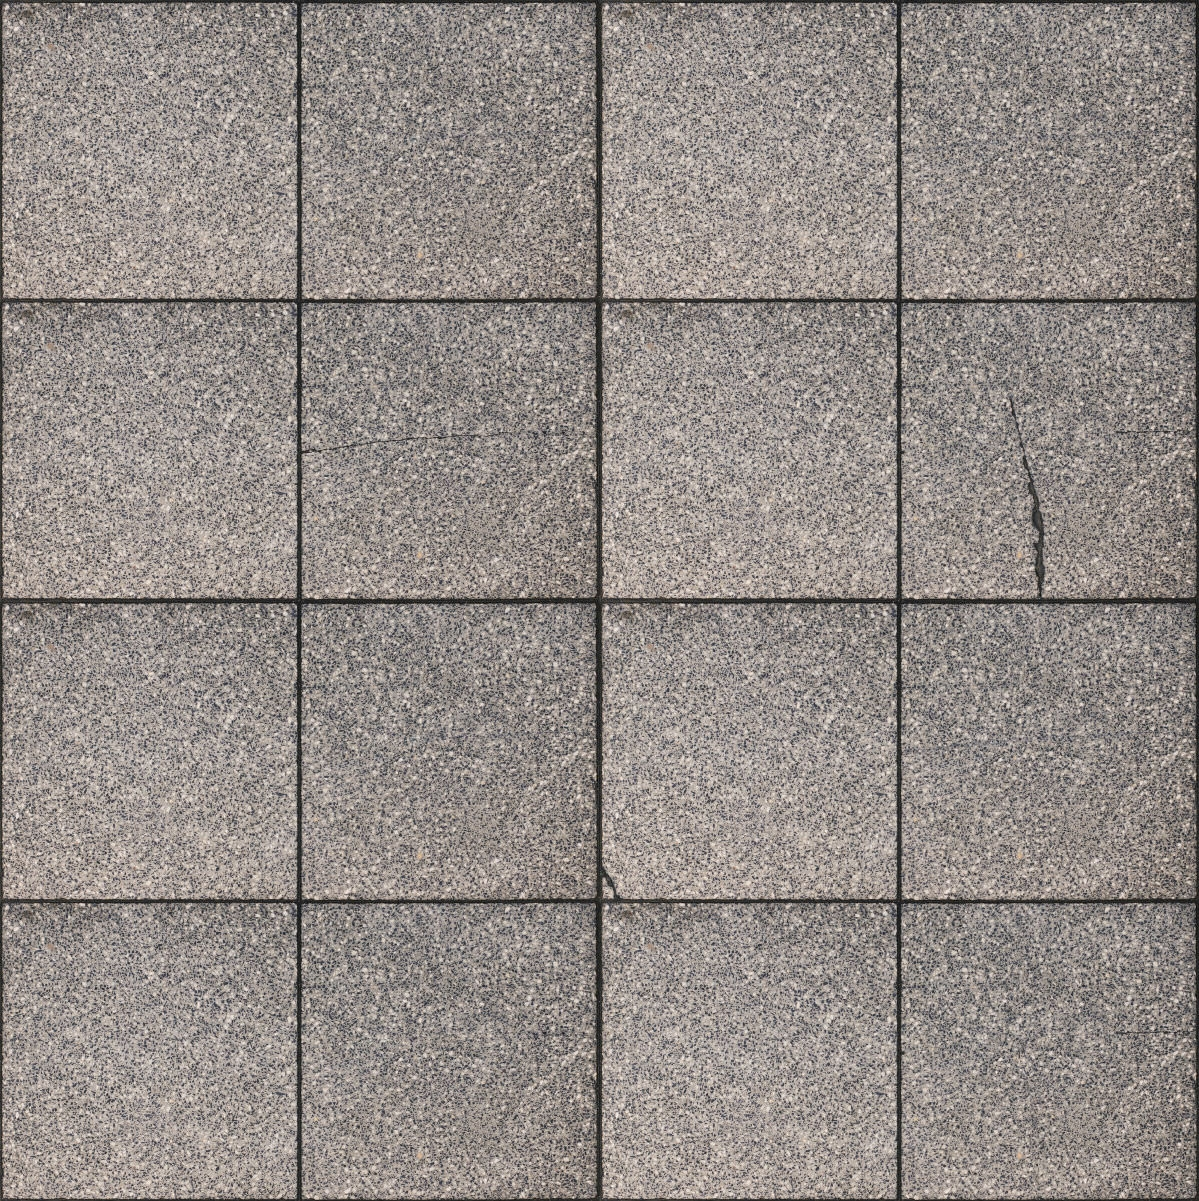 35 free high quality tile textures to decorate your home for Floor tiles images